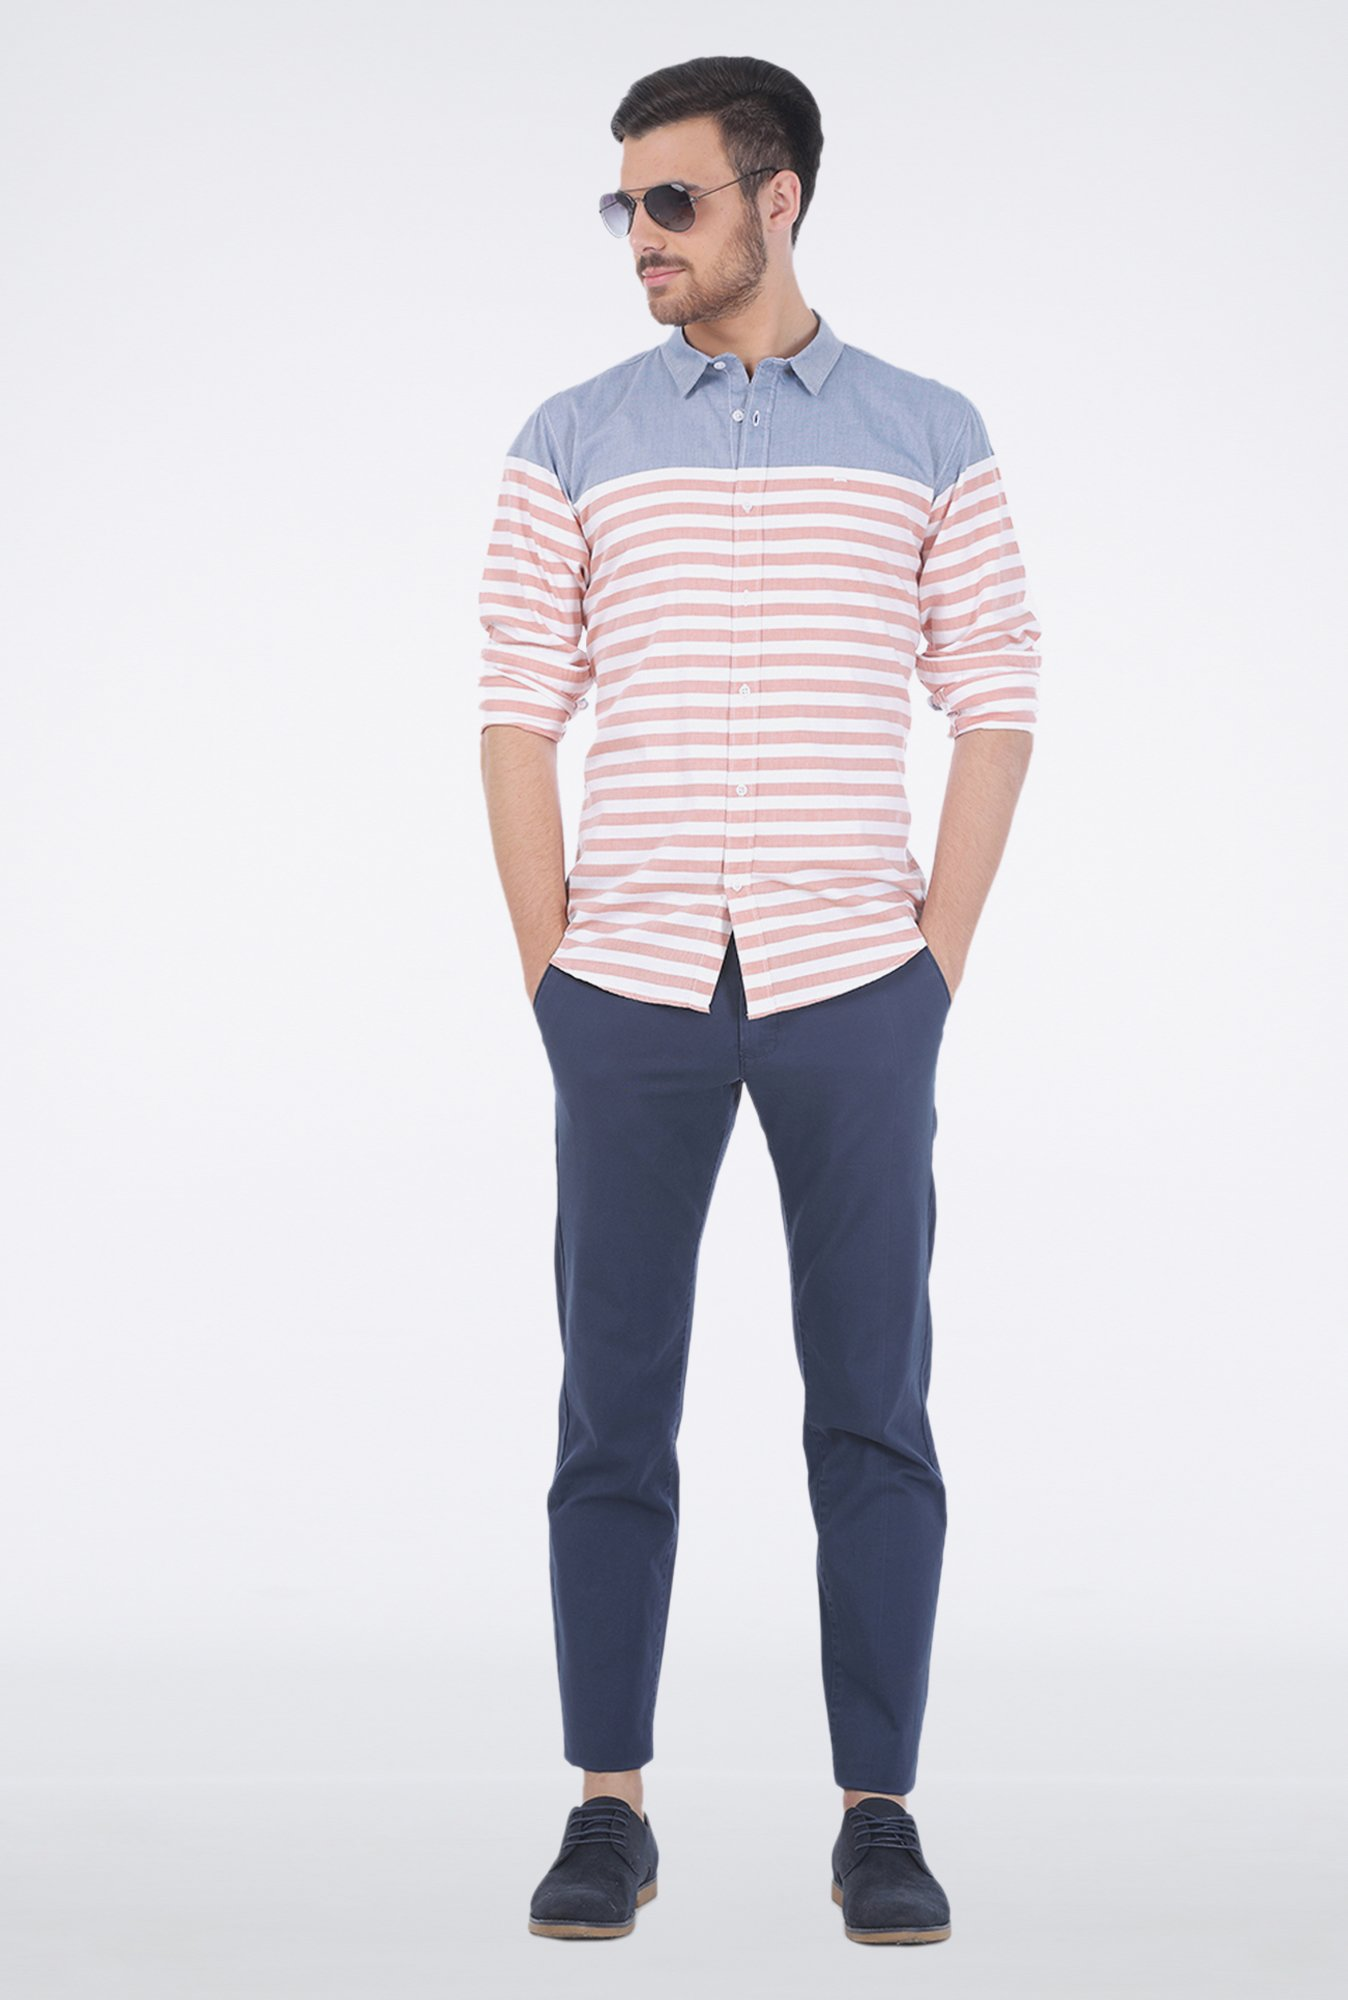 Basics Pink Stripe Shirt